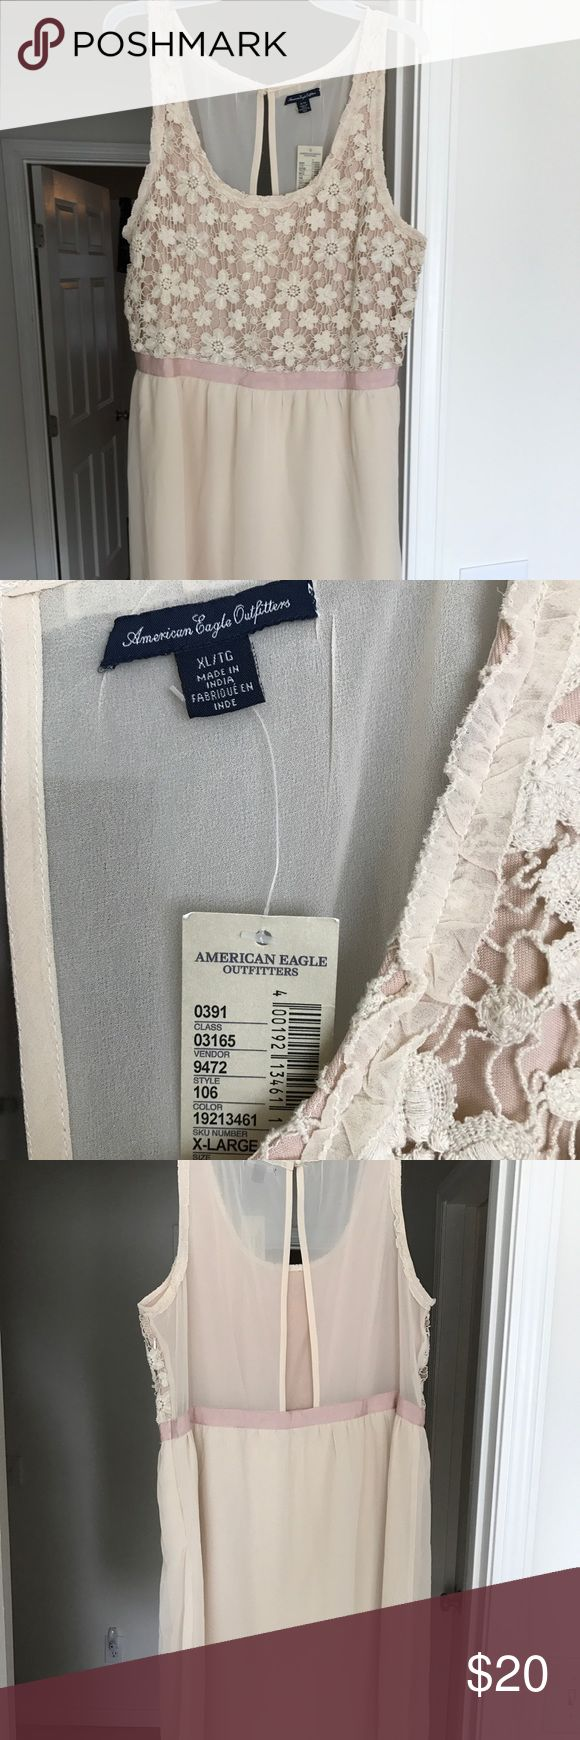 American Eagle dress Cream and pink NWT American Eagle dress. Beautiful lace on front with surprise flirty back opening. American Eagle Outfitters Dresses Mini